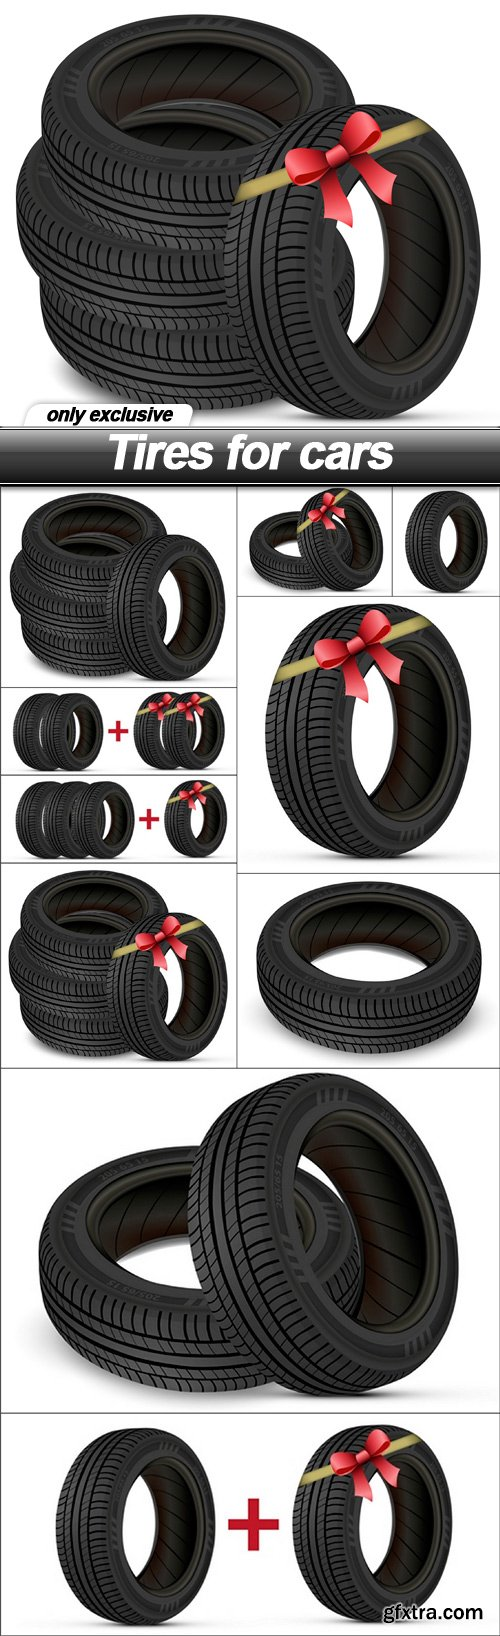 Tires for cars - 10 EPS